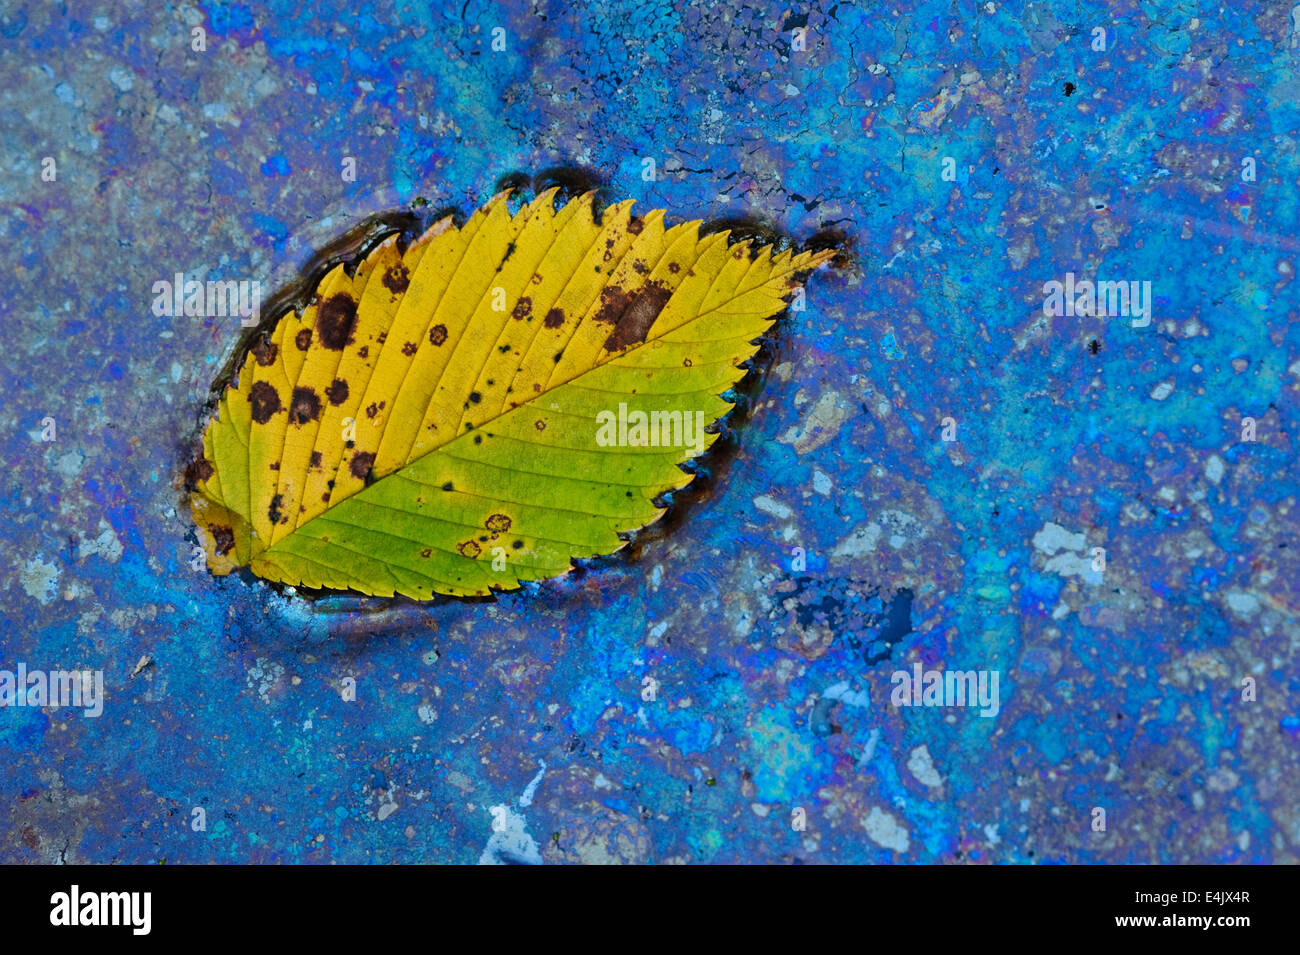 Naturally forming bacteria (Leptothrix discophora) forms around a leaf in a vernal pond, feeding on iron nutrients - Stock Image